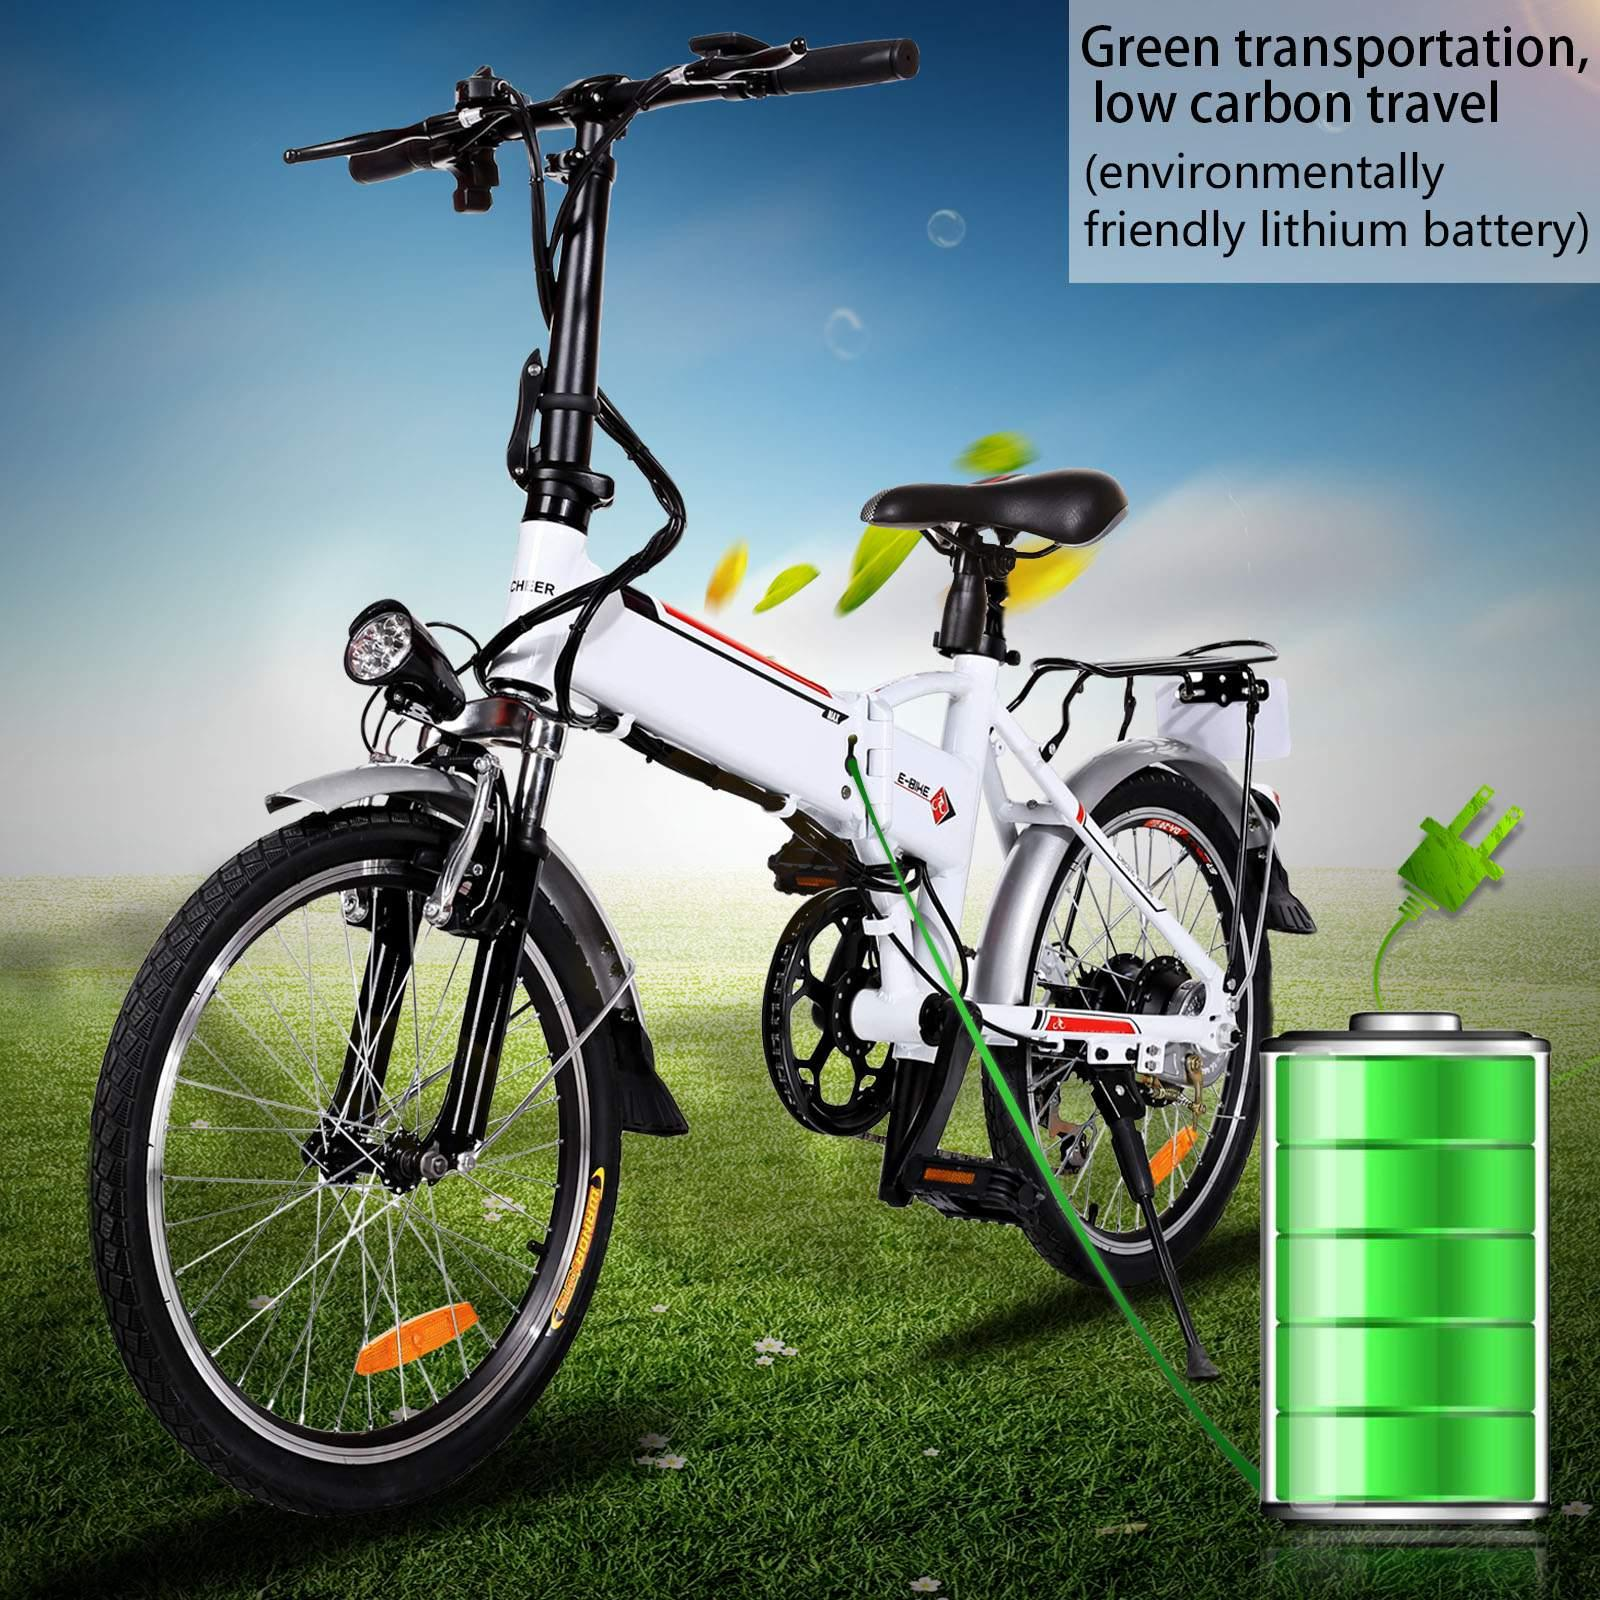 25-35KM/H Speed 19'' Folding Electric Mountain Bike with 36V, 8AH Removable Lithium-Ion Battery 250W Electric Bike for Adults with Battery Charger